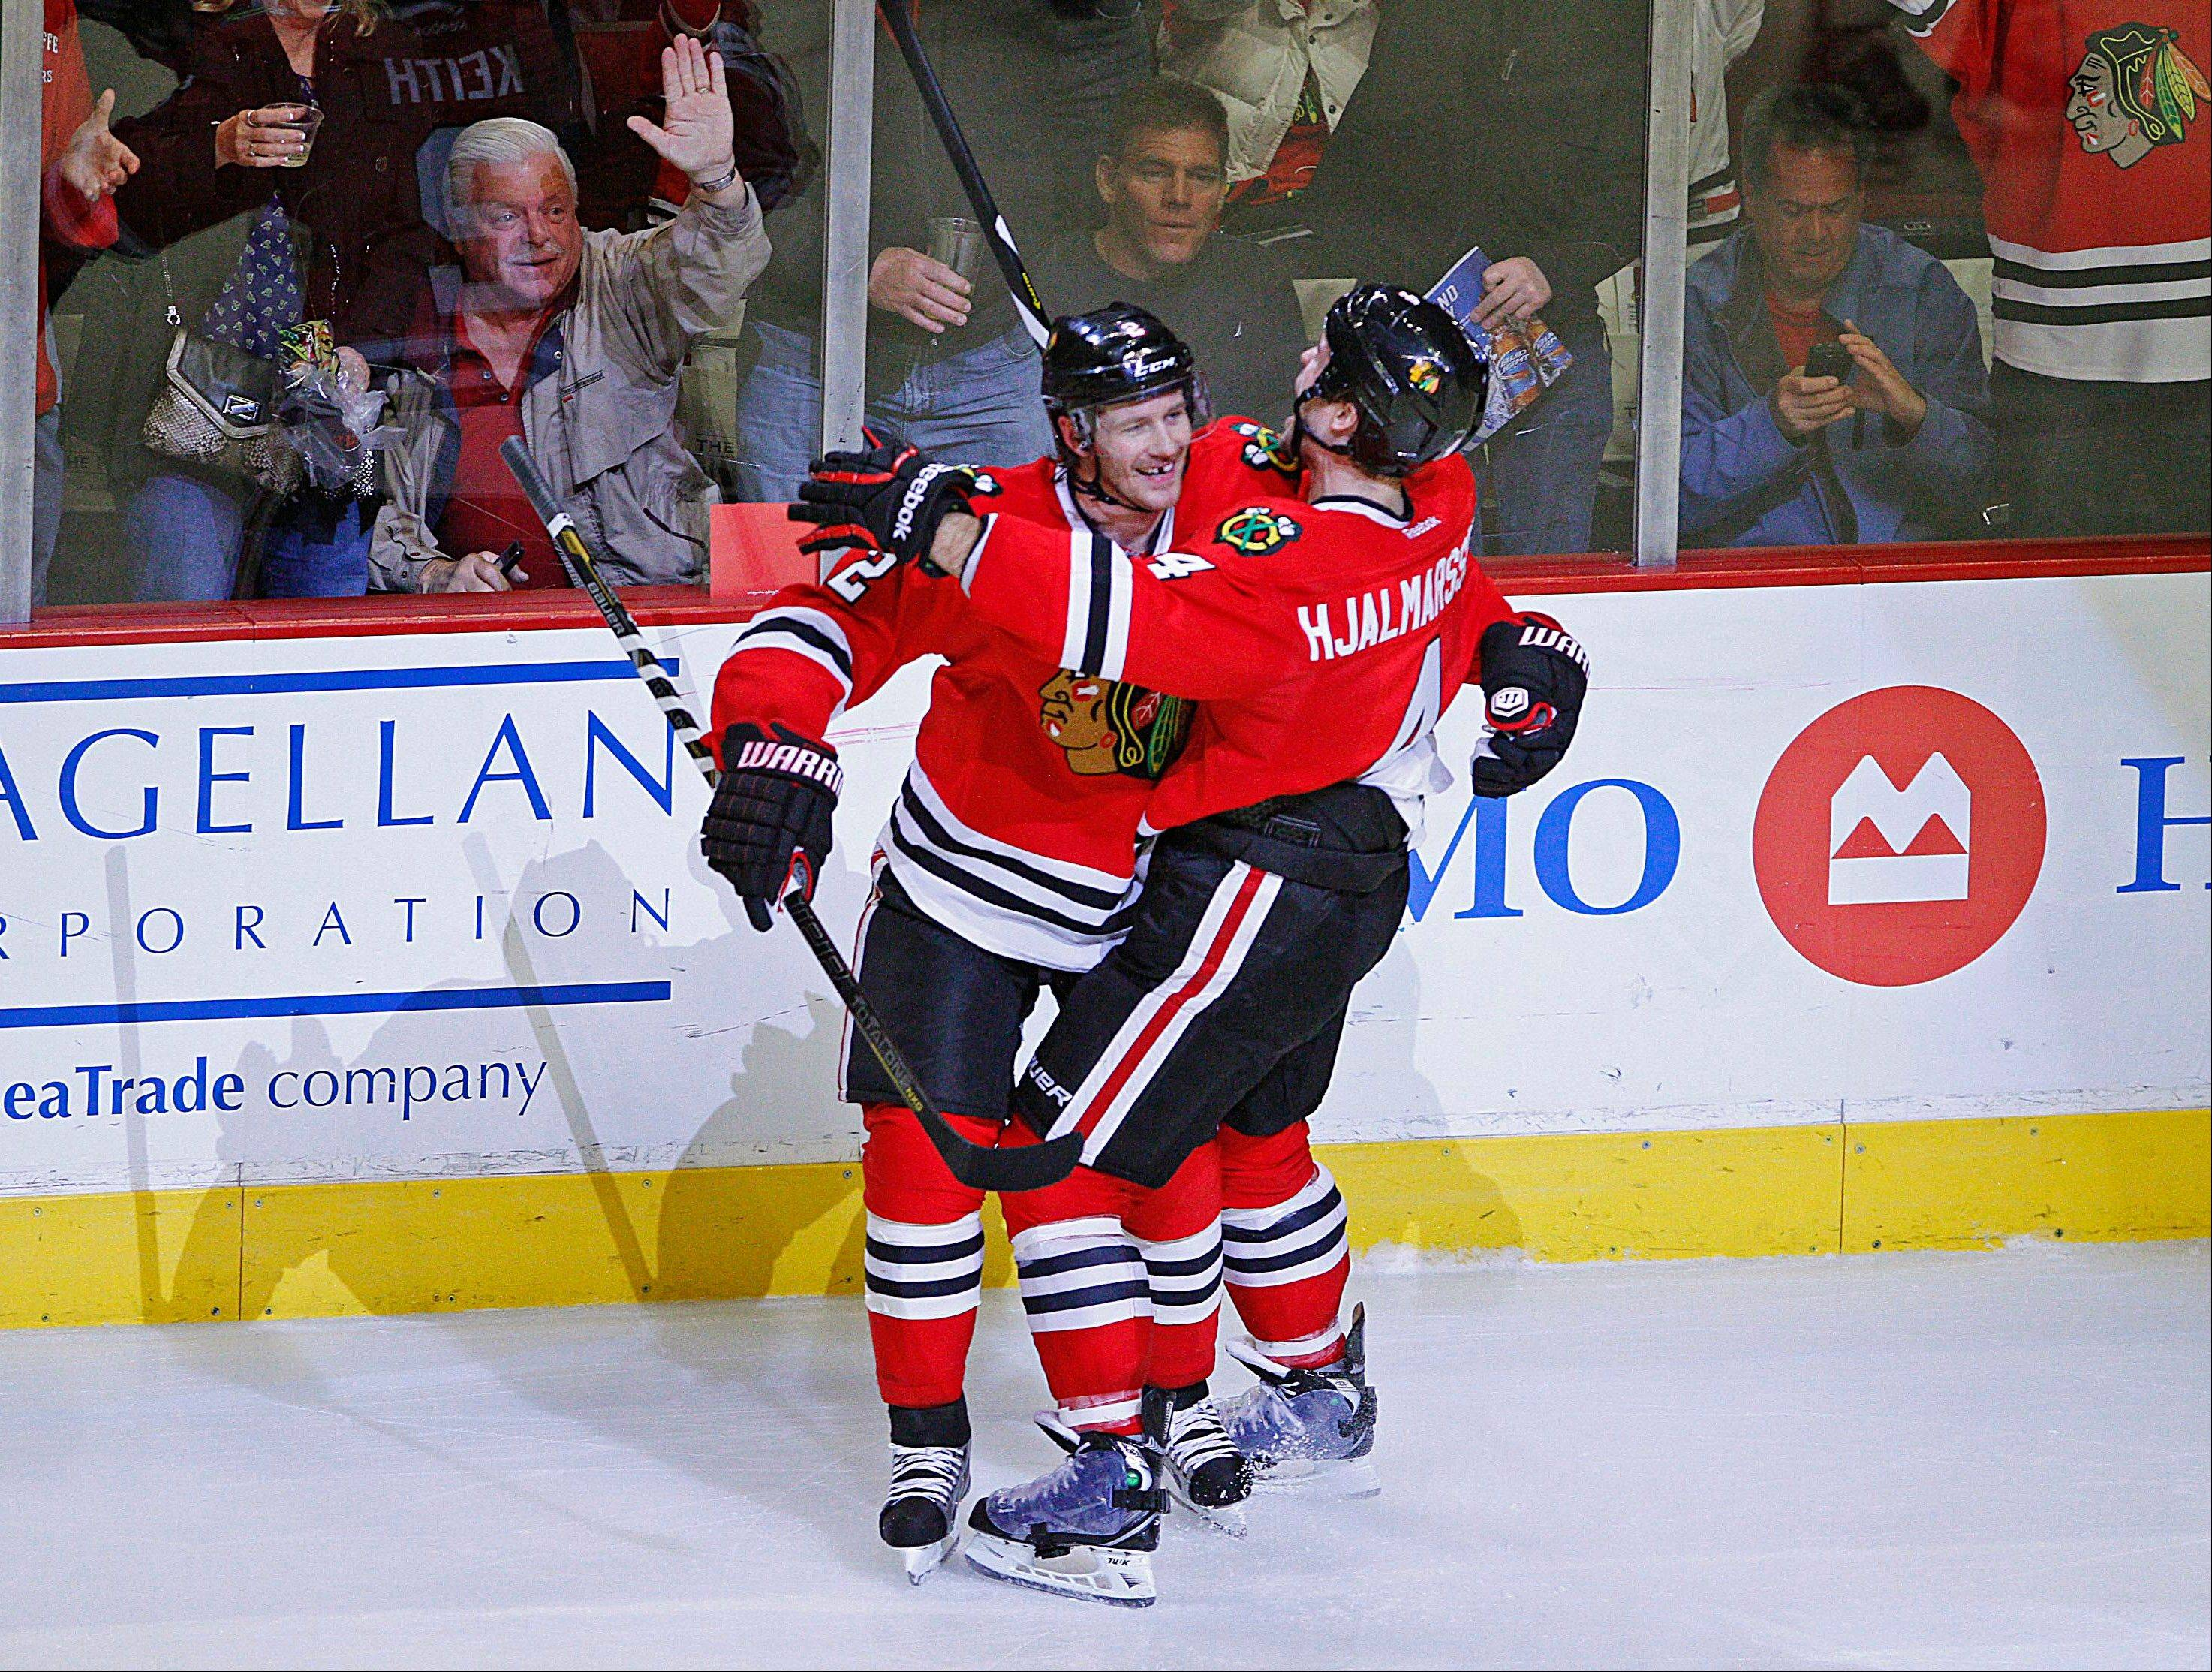 The Blackhawks' Duncan Keith and Niklas Hjalmarsson hug after Hjalmarrsson scored against the Dallas Stars during the third period Monday night at the United Center. The Blackhawks won 5-2.